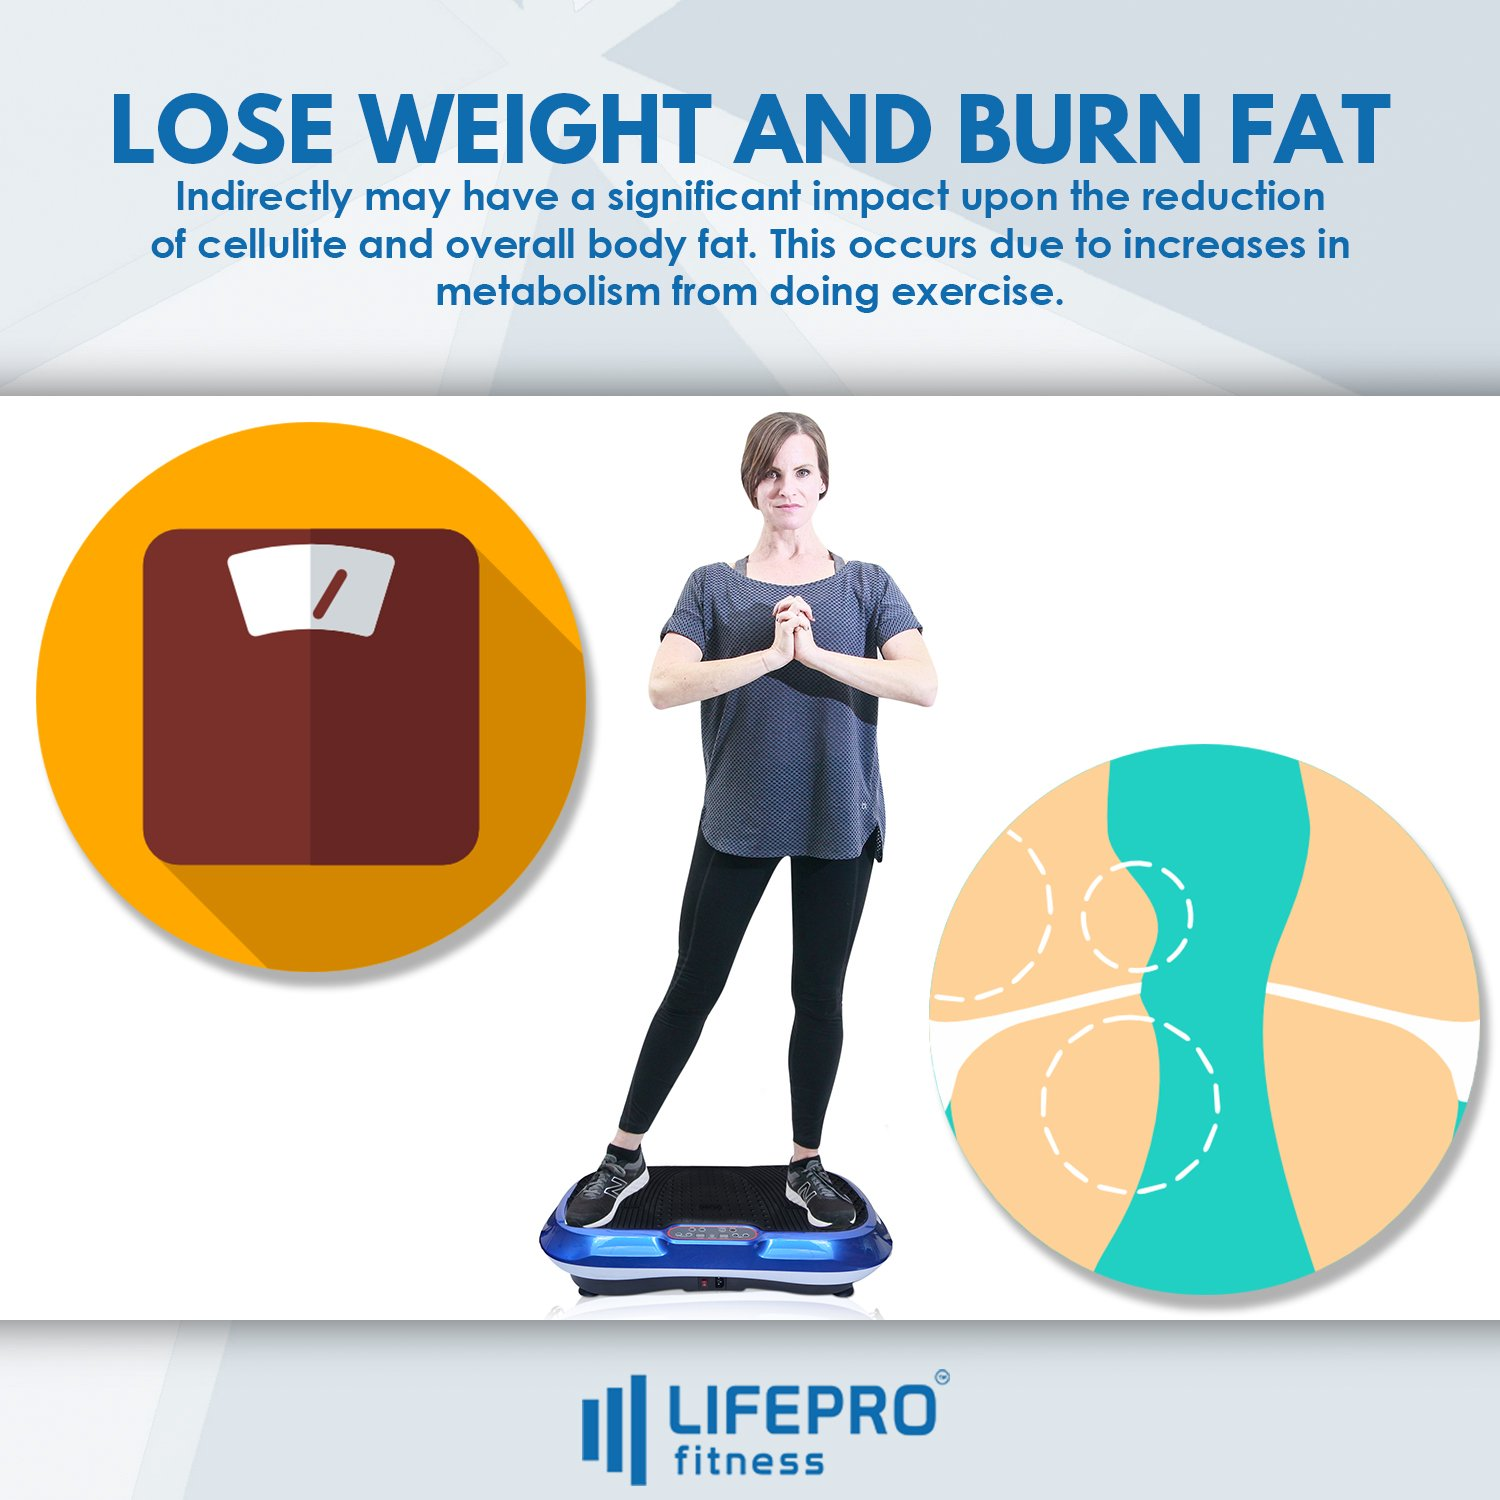 LifePro Vibration Plate Exercise Machine - Whole Body Workout Vibration Fitness Platform w/Loop Bands - Home Training Equipment for Weight Loss & Toning - Remote, Balance Straps, Videos & Manual by LifePro (Image #3)